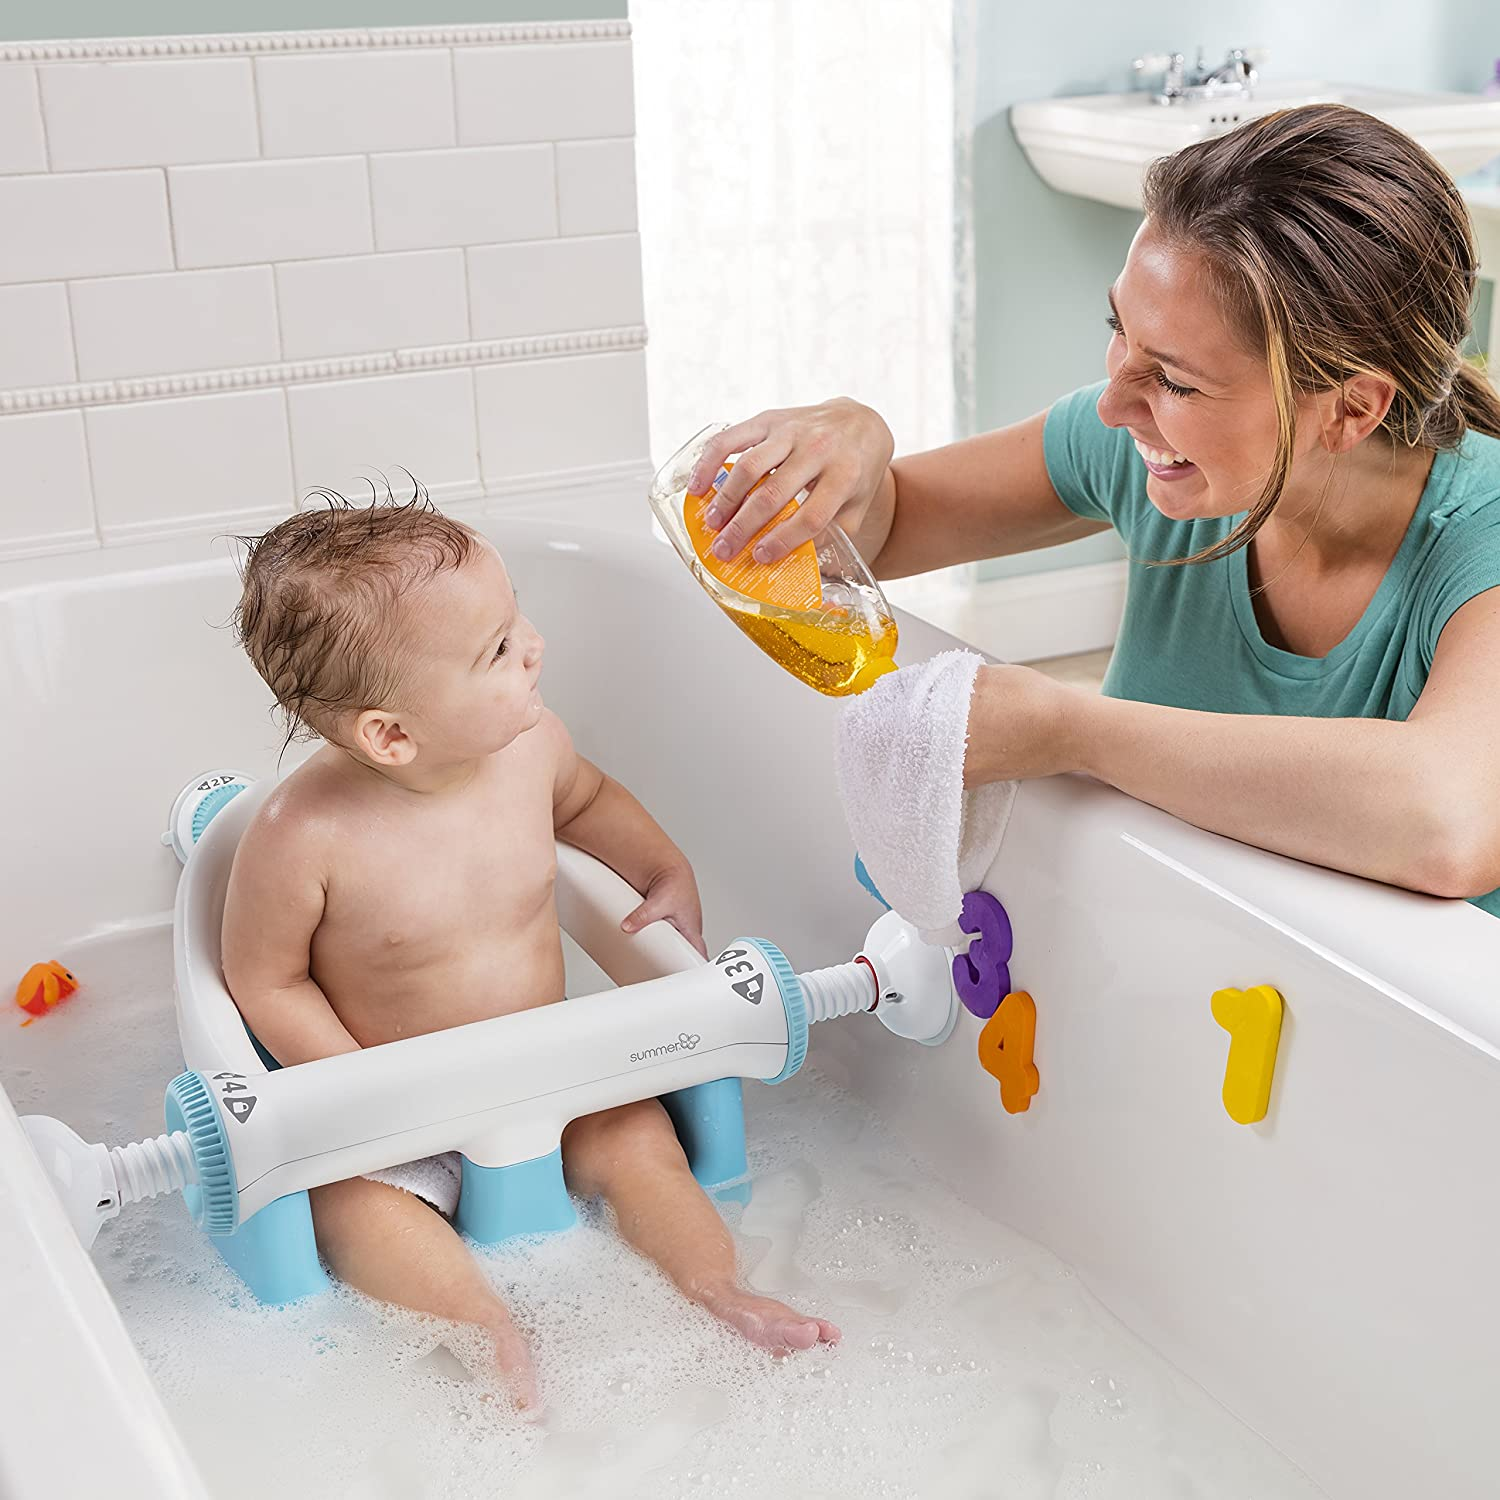 Amazon.com : Summer Infant My Bath Seat, Baby Bathtub Seat for Sit ...